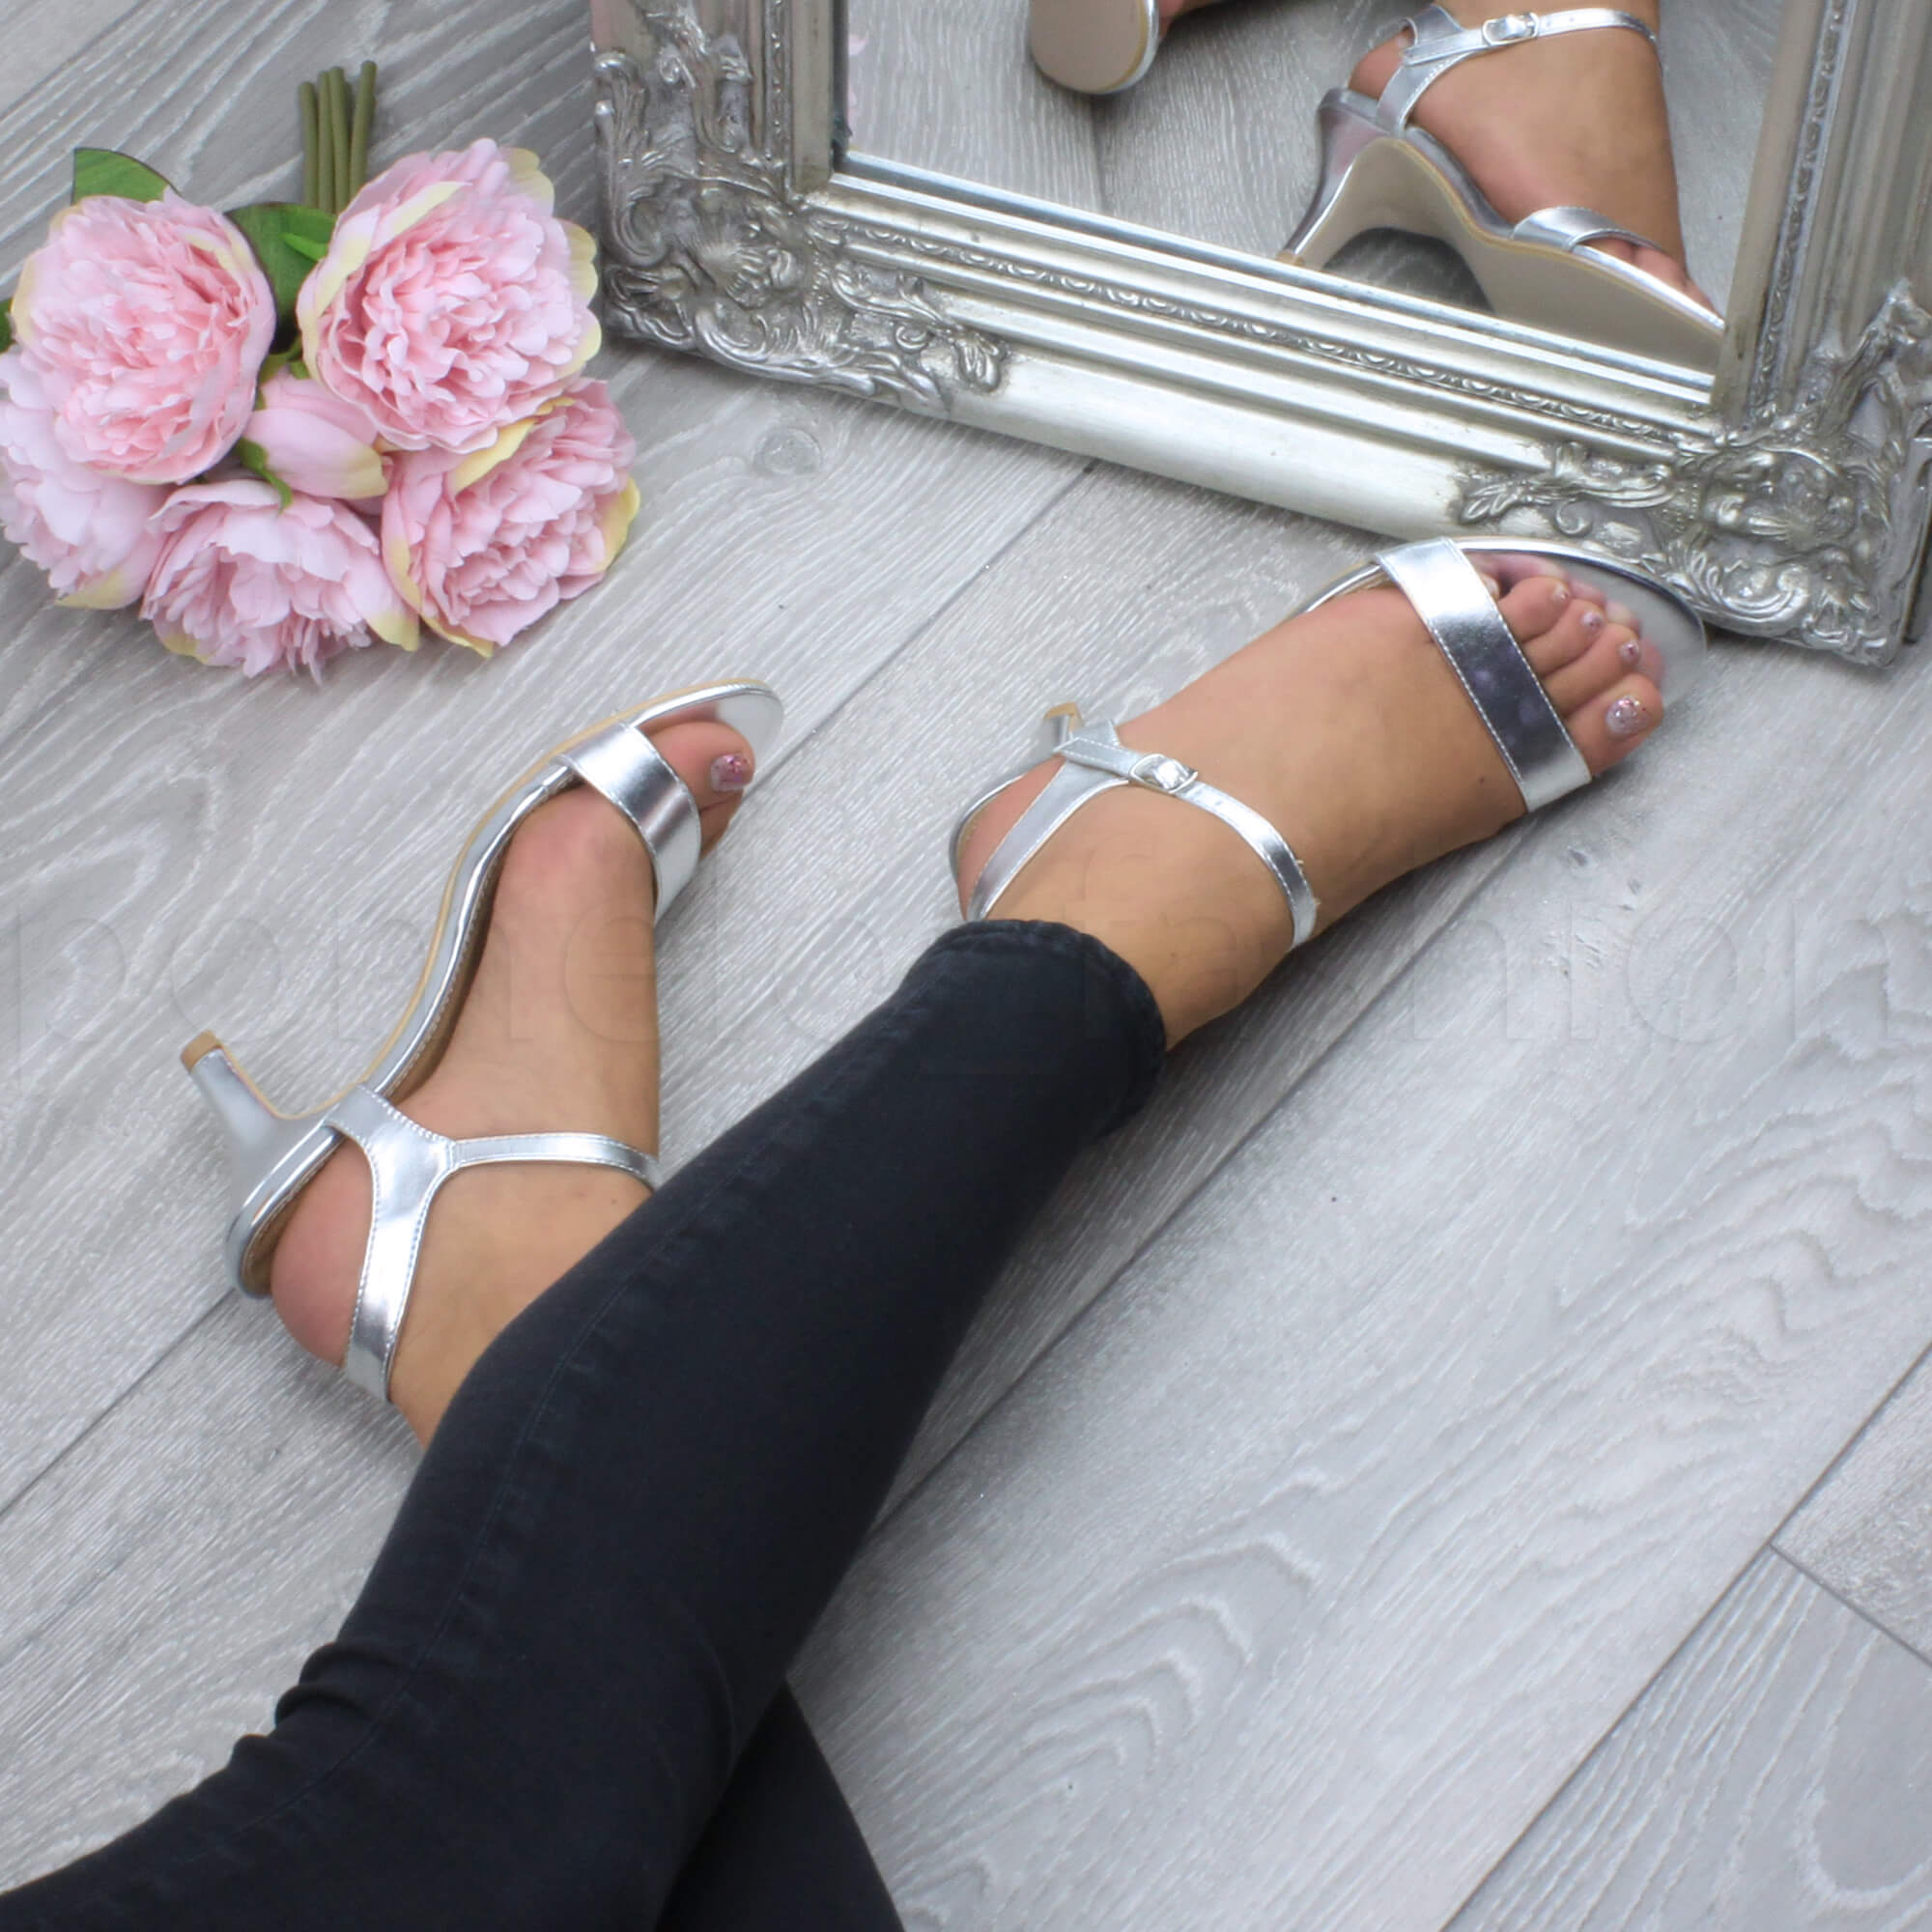 7565f689b17 ... Ladies High Heel Buckle Strappy Basic Barely There Sandals Shoes Size  UK 6   EU 39   US 8 Silver Metallic. About this product. Picture 1 of 2   Picture 2 ...